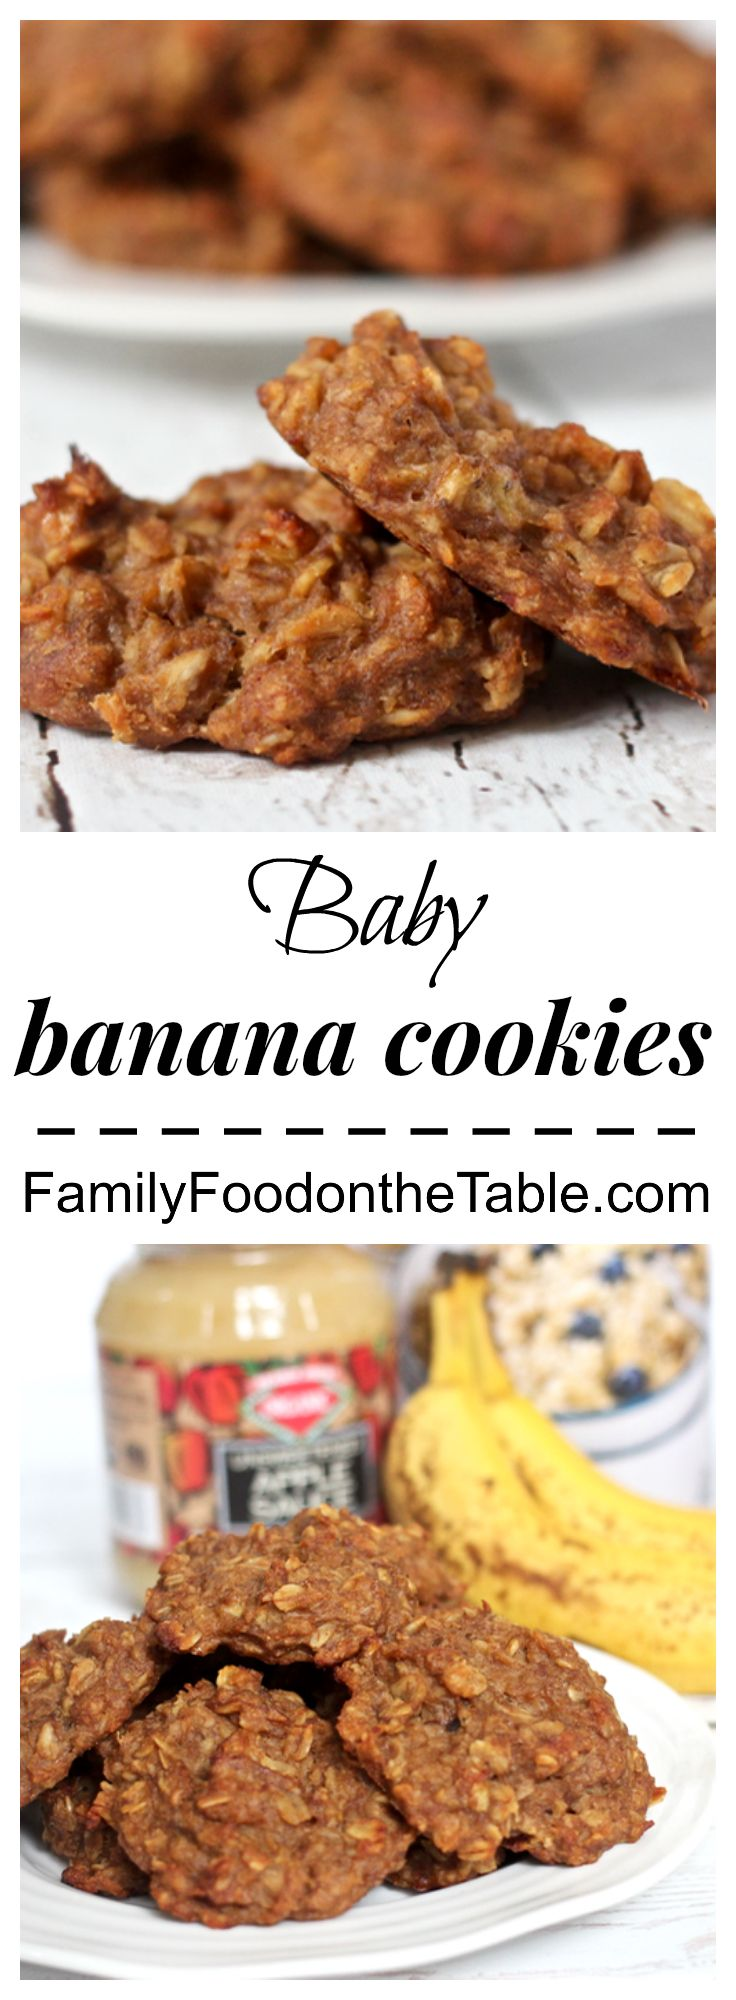 Baby banana cookies recipe with images baby food